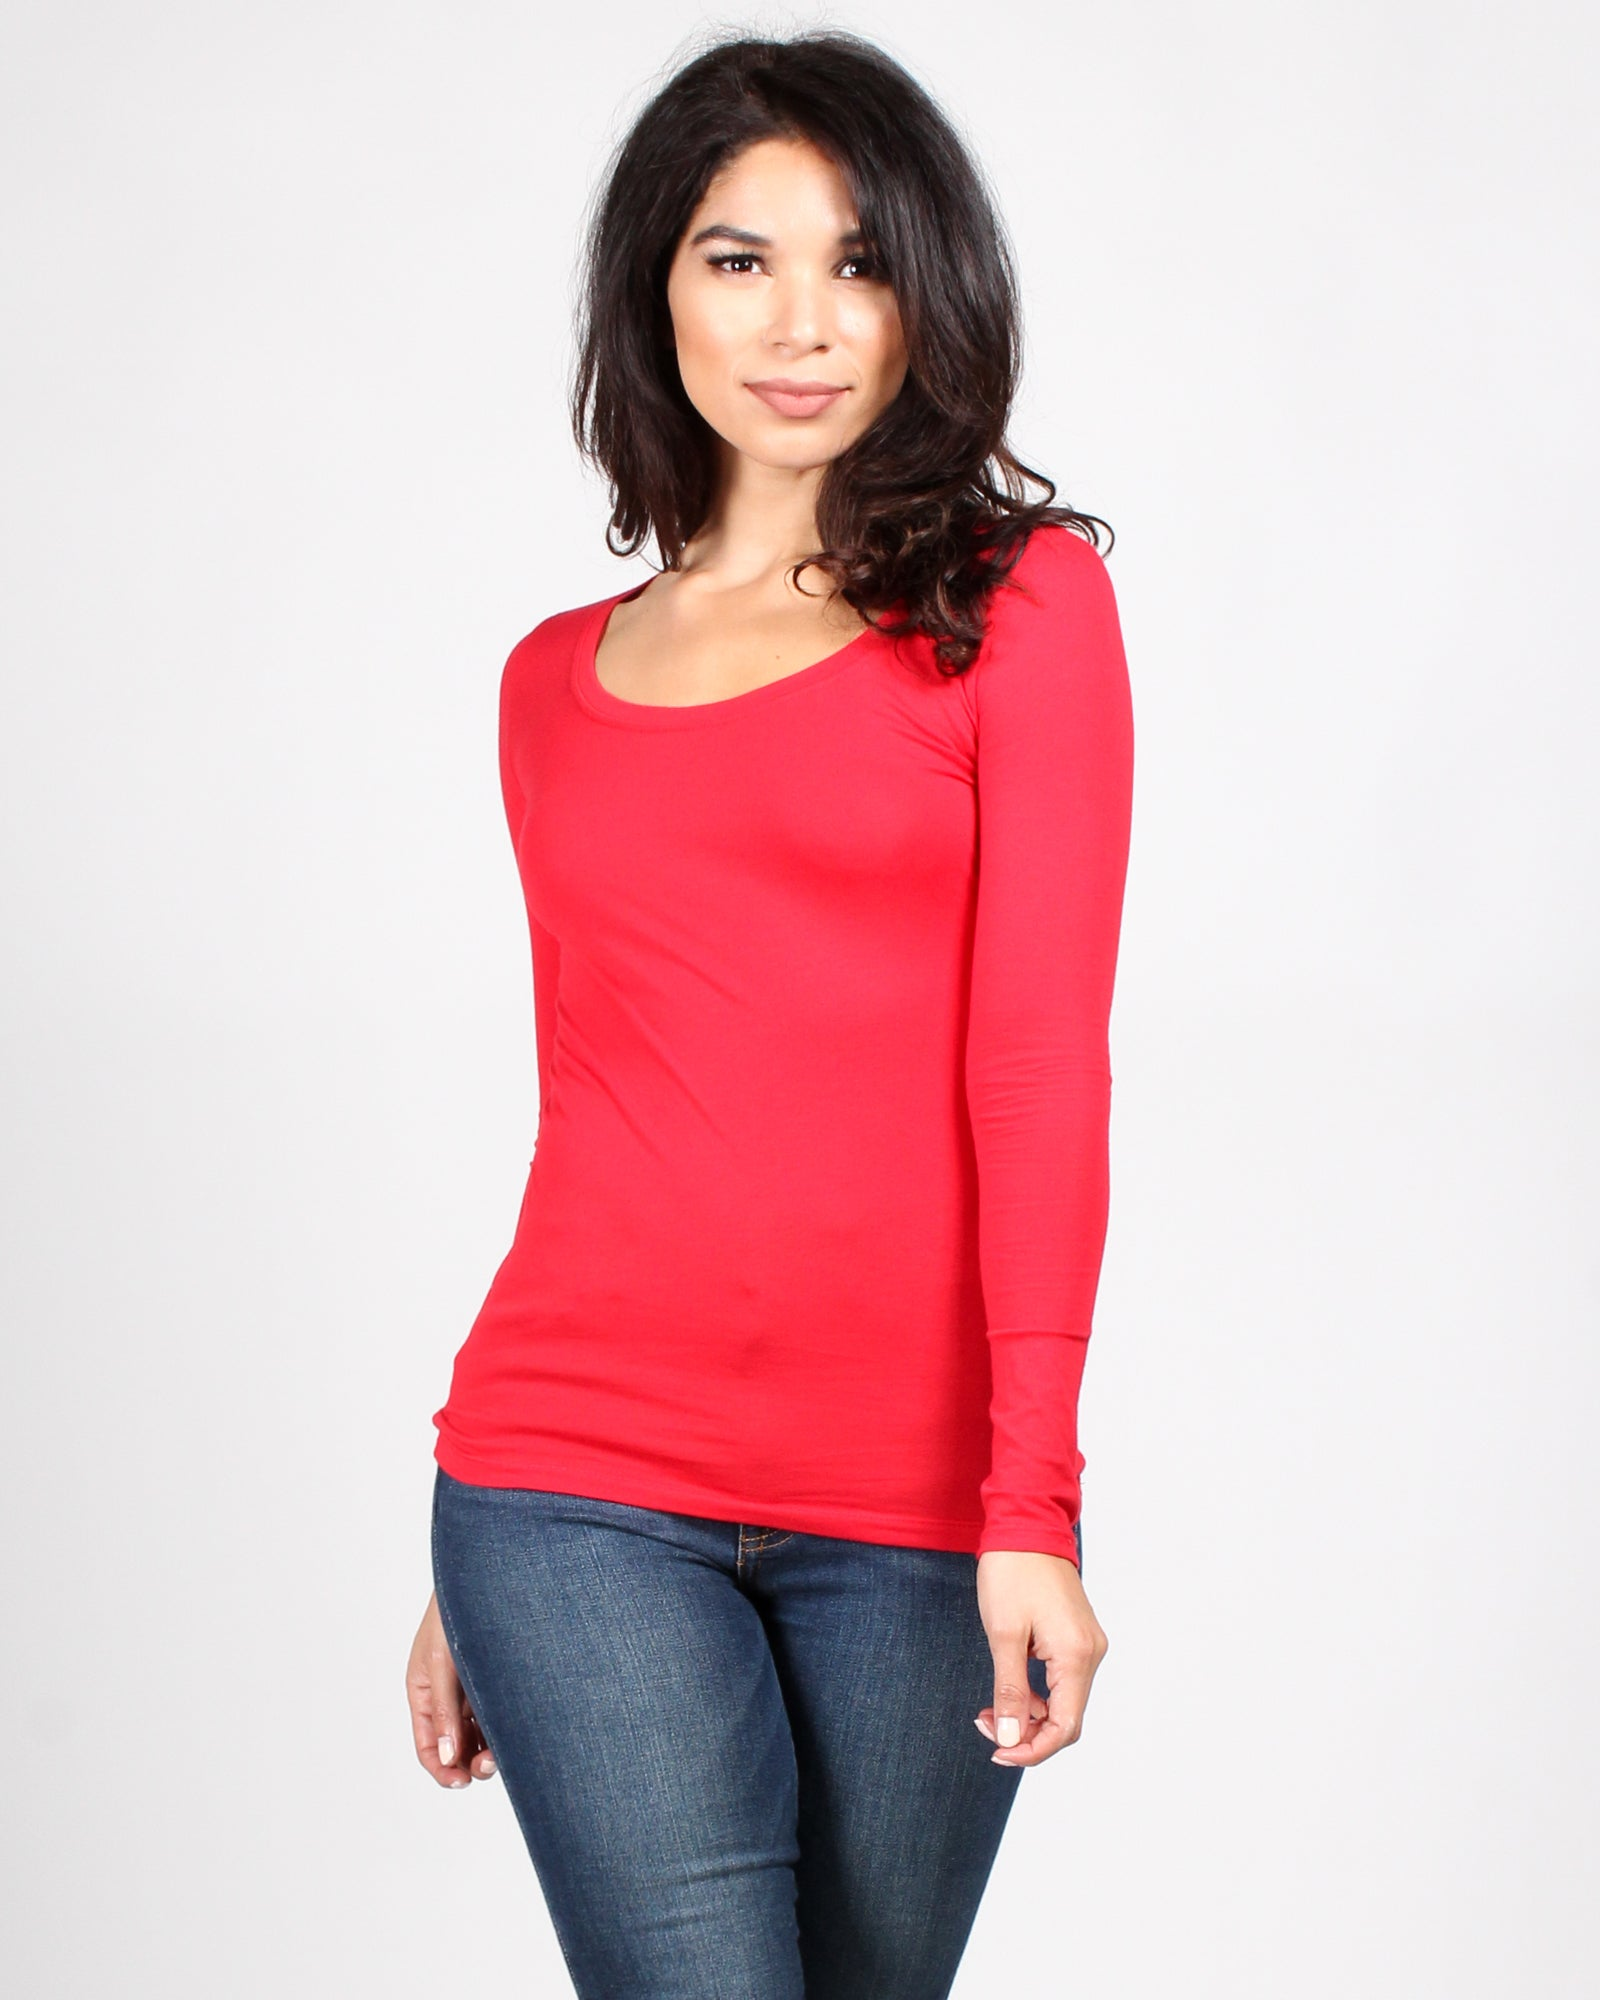 The Q Basics: Round Neck Long Sleeve Top (Red)